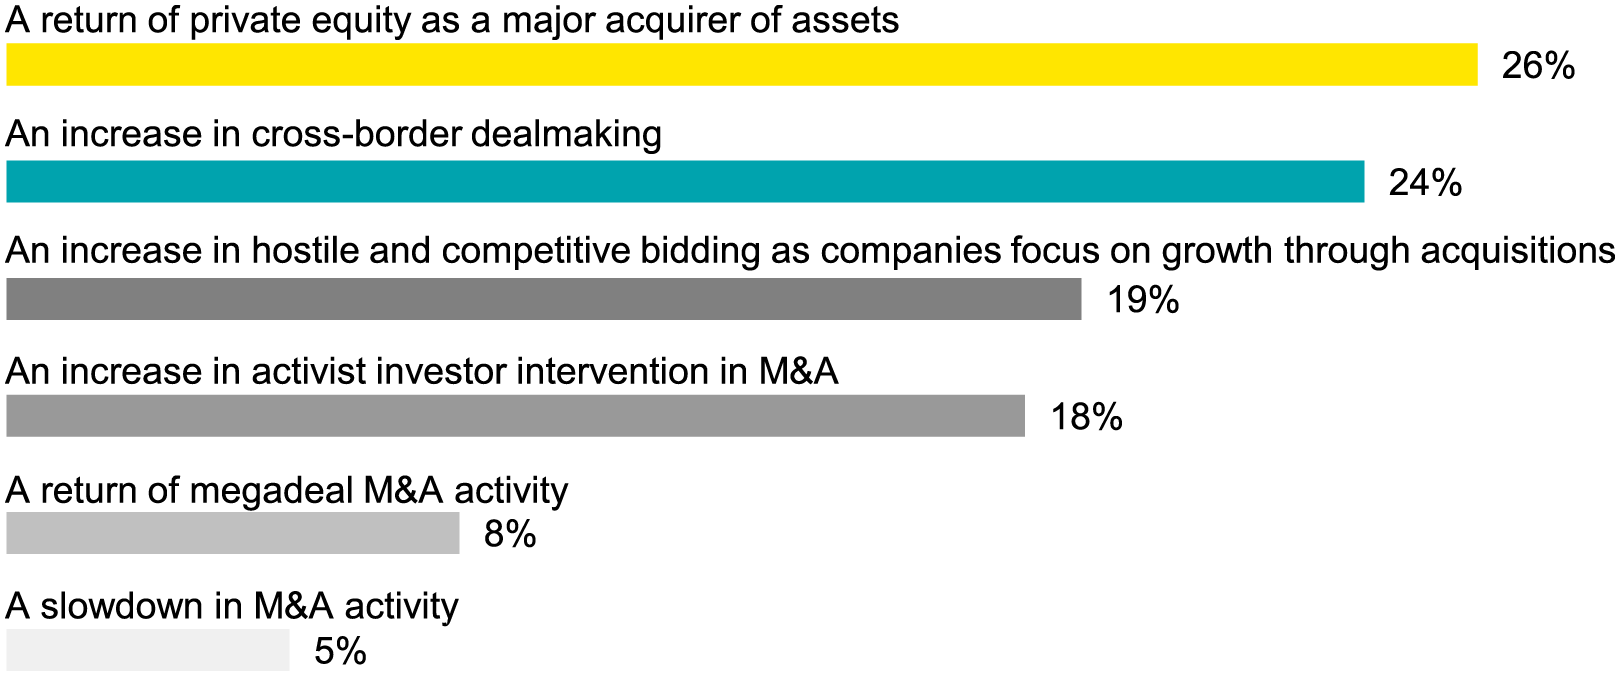 What will be the main themes of M&A in the next 12 months?